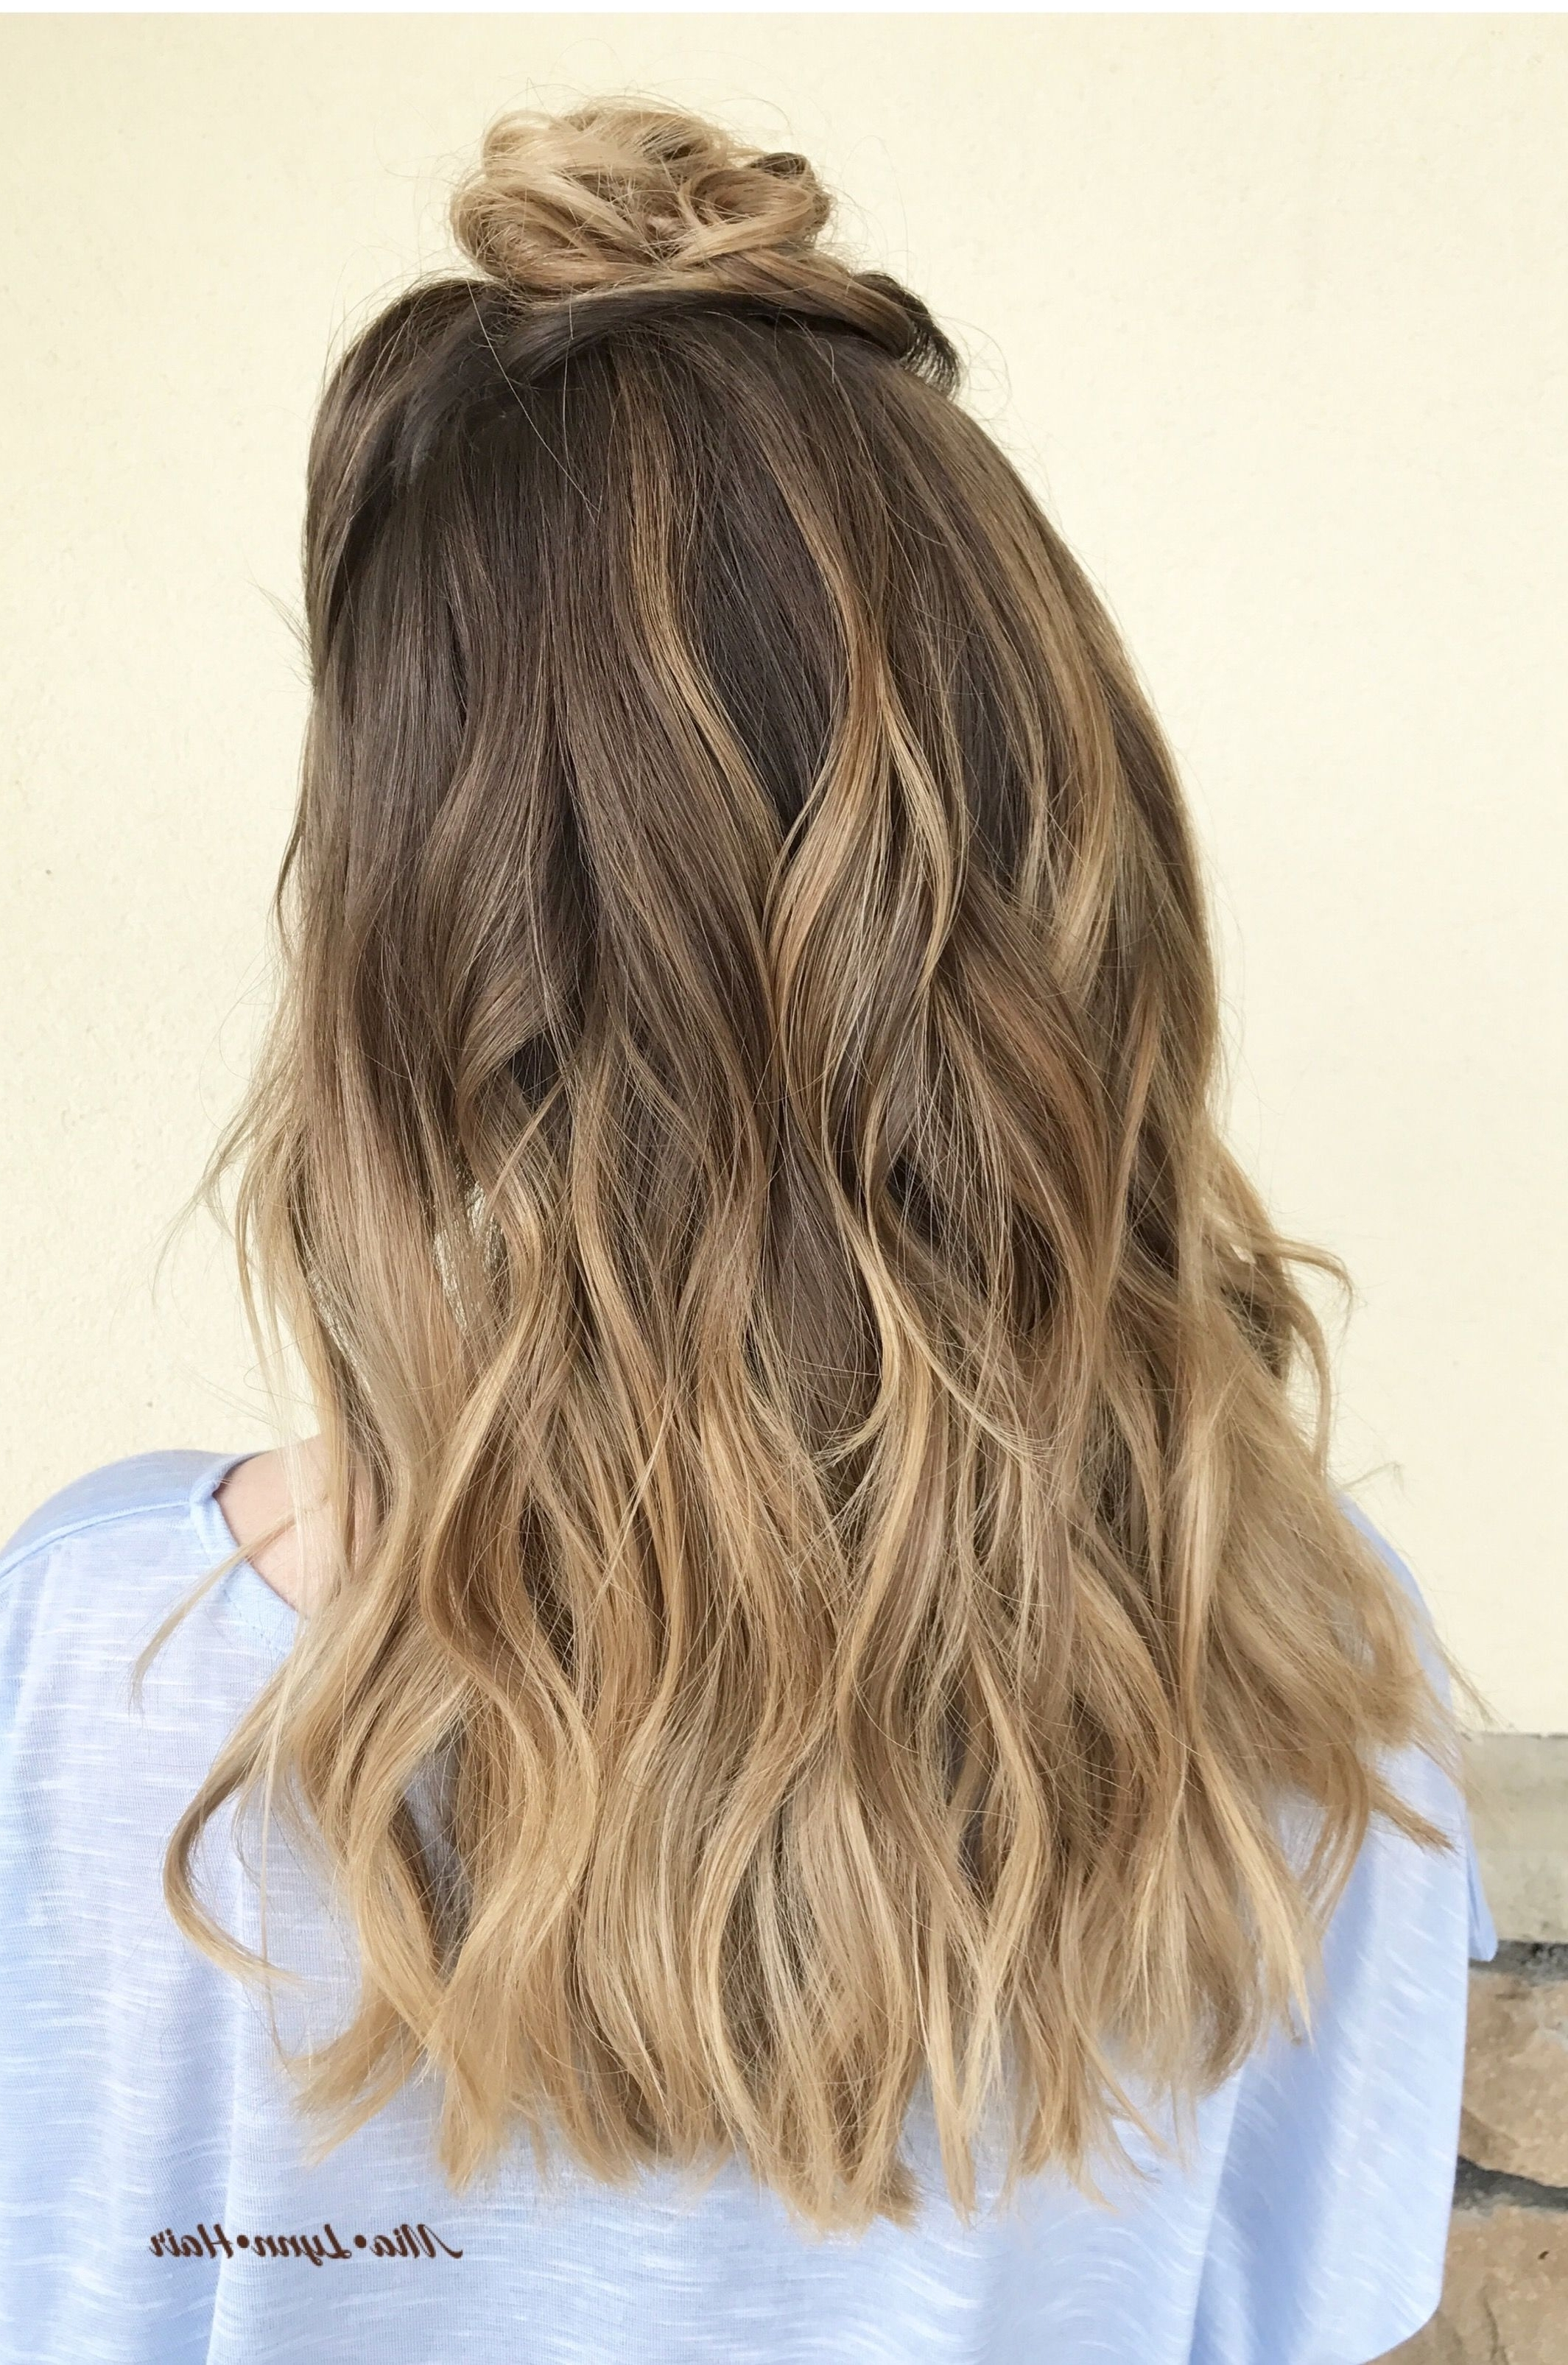 Balayage, Balayage Highlights, Painted Highlights, Blonde Hair Intended For Most Popular Soft Waves Blonde Hairstyles With Platinum Tips (View 17 of 20)